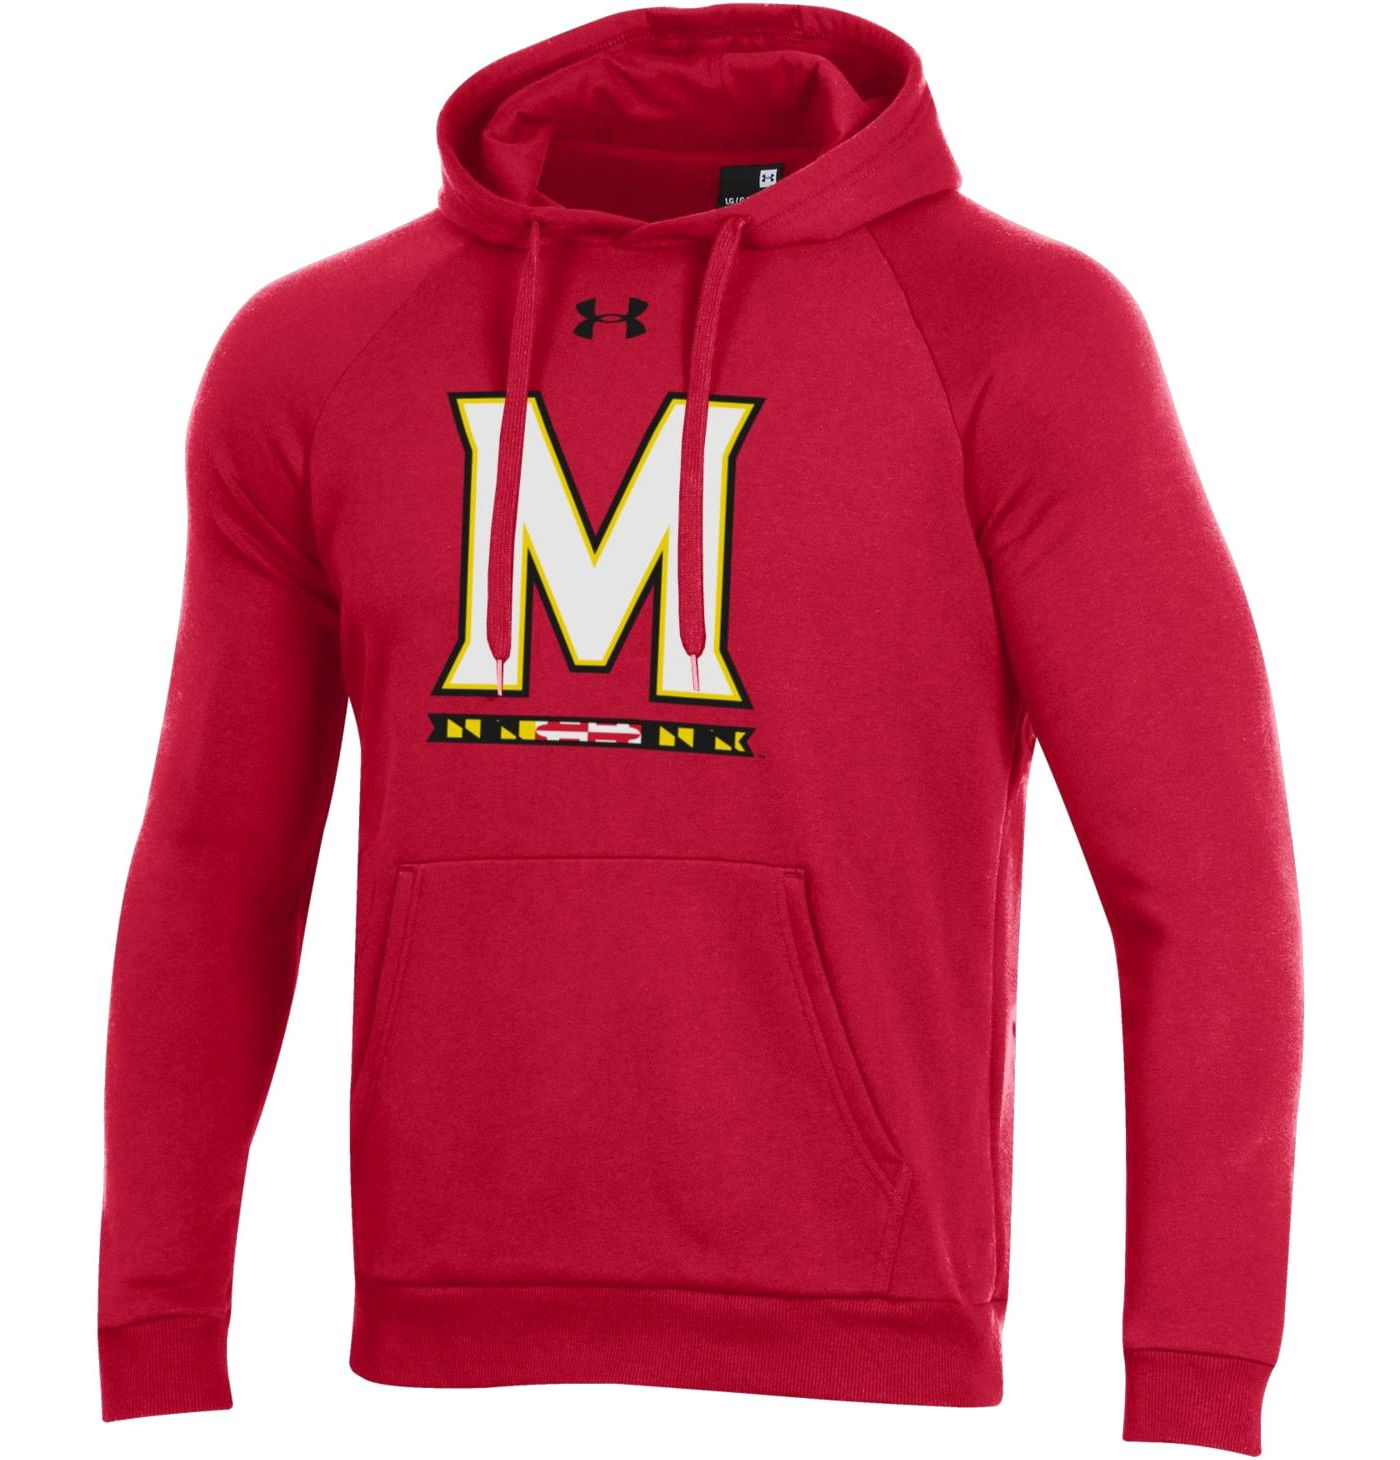 Under Armour Men's Maryland Terrapins Red All Day Hoodie